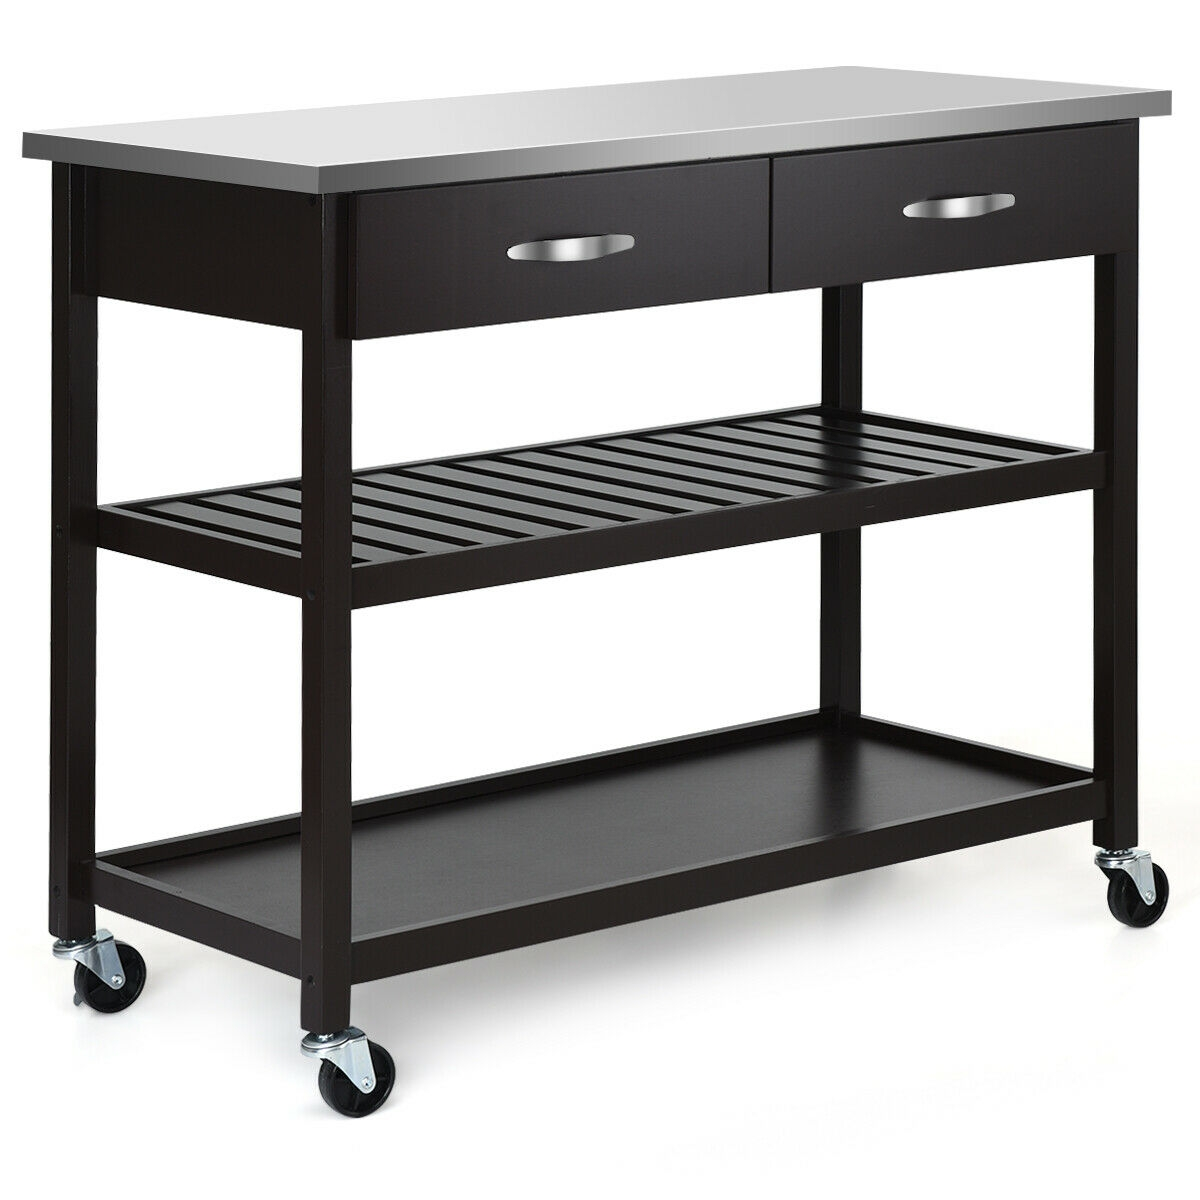 Rolling Kitchen Trolley Cart Island with Stainless Steel Countertop